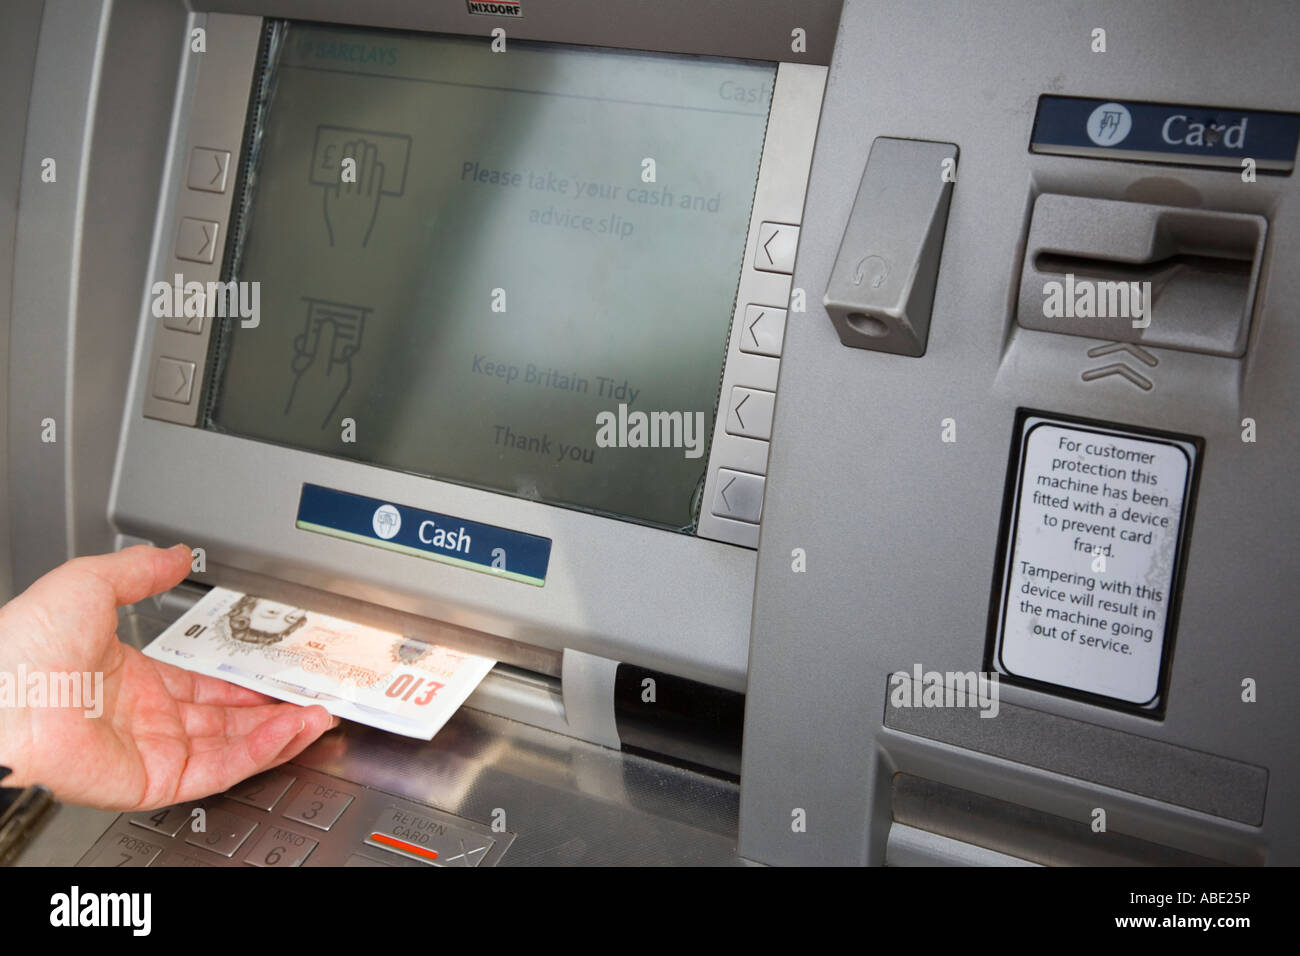 ATM cashpoint cash machine Hole in the Wall bank teller remove money screen with a pensioner's hand taking £10 sterling notes. England UK Britain Stock Photo